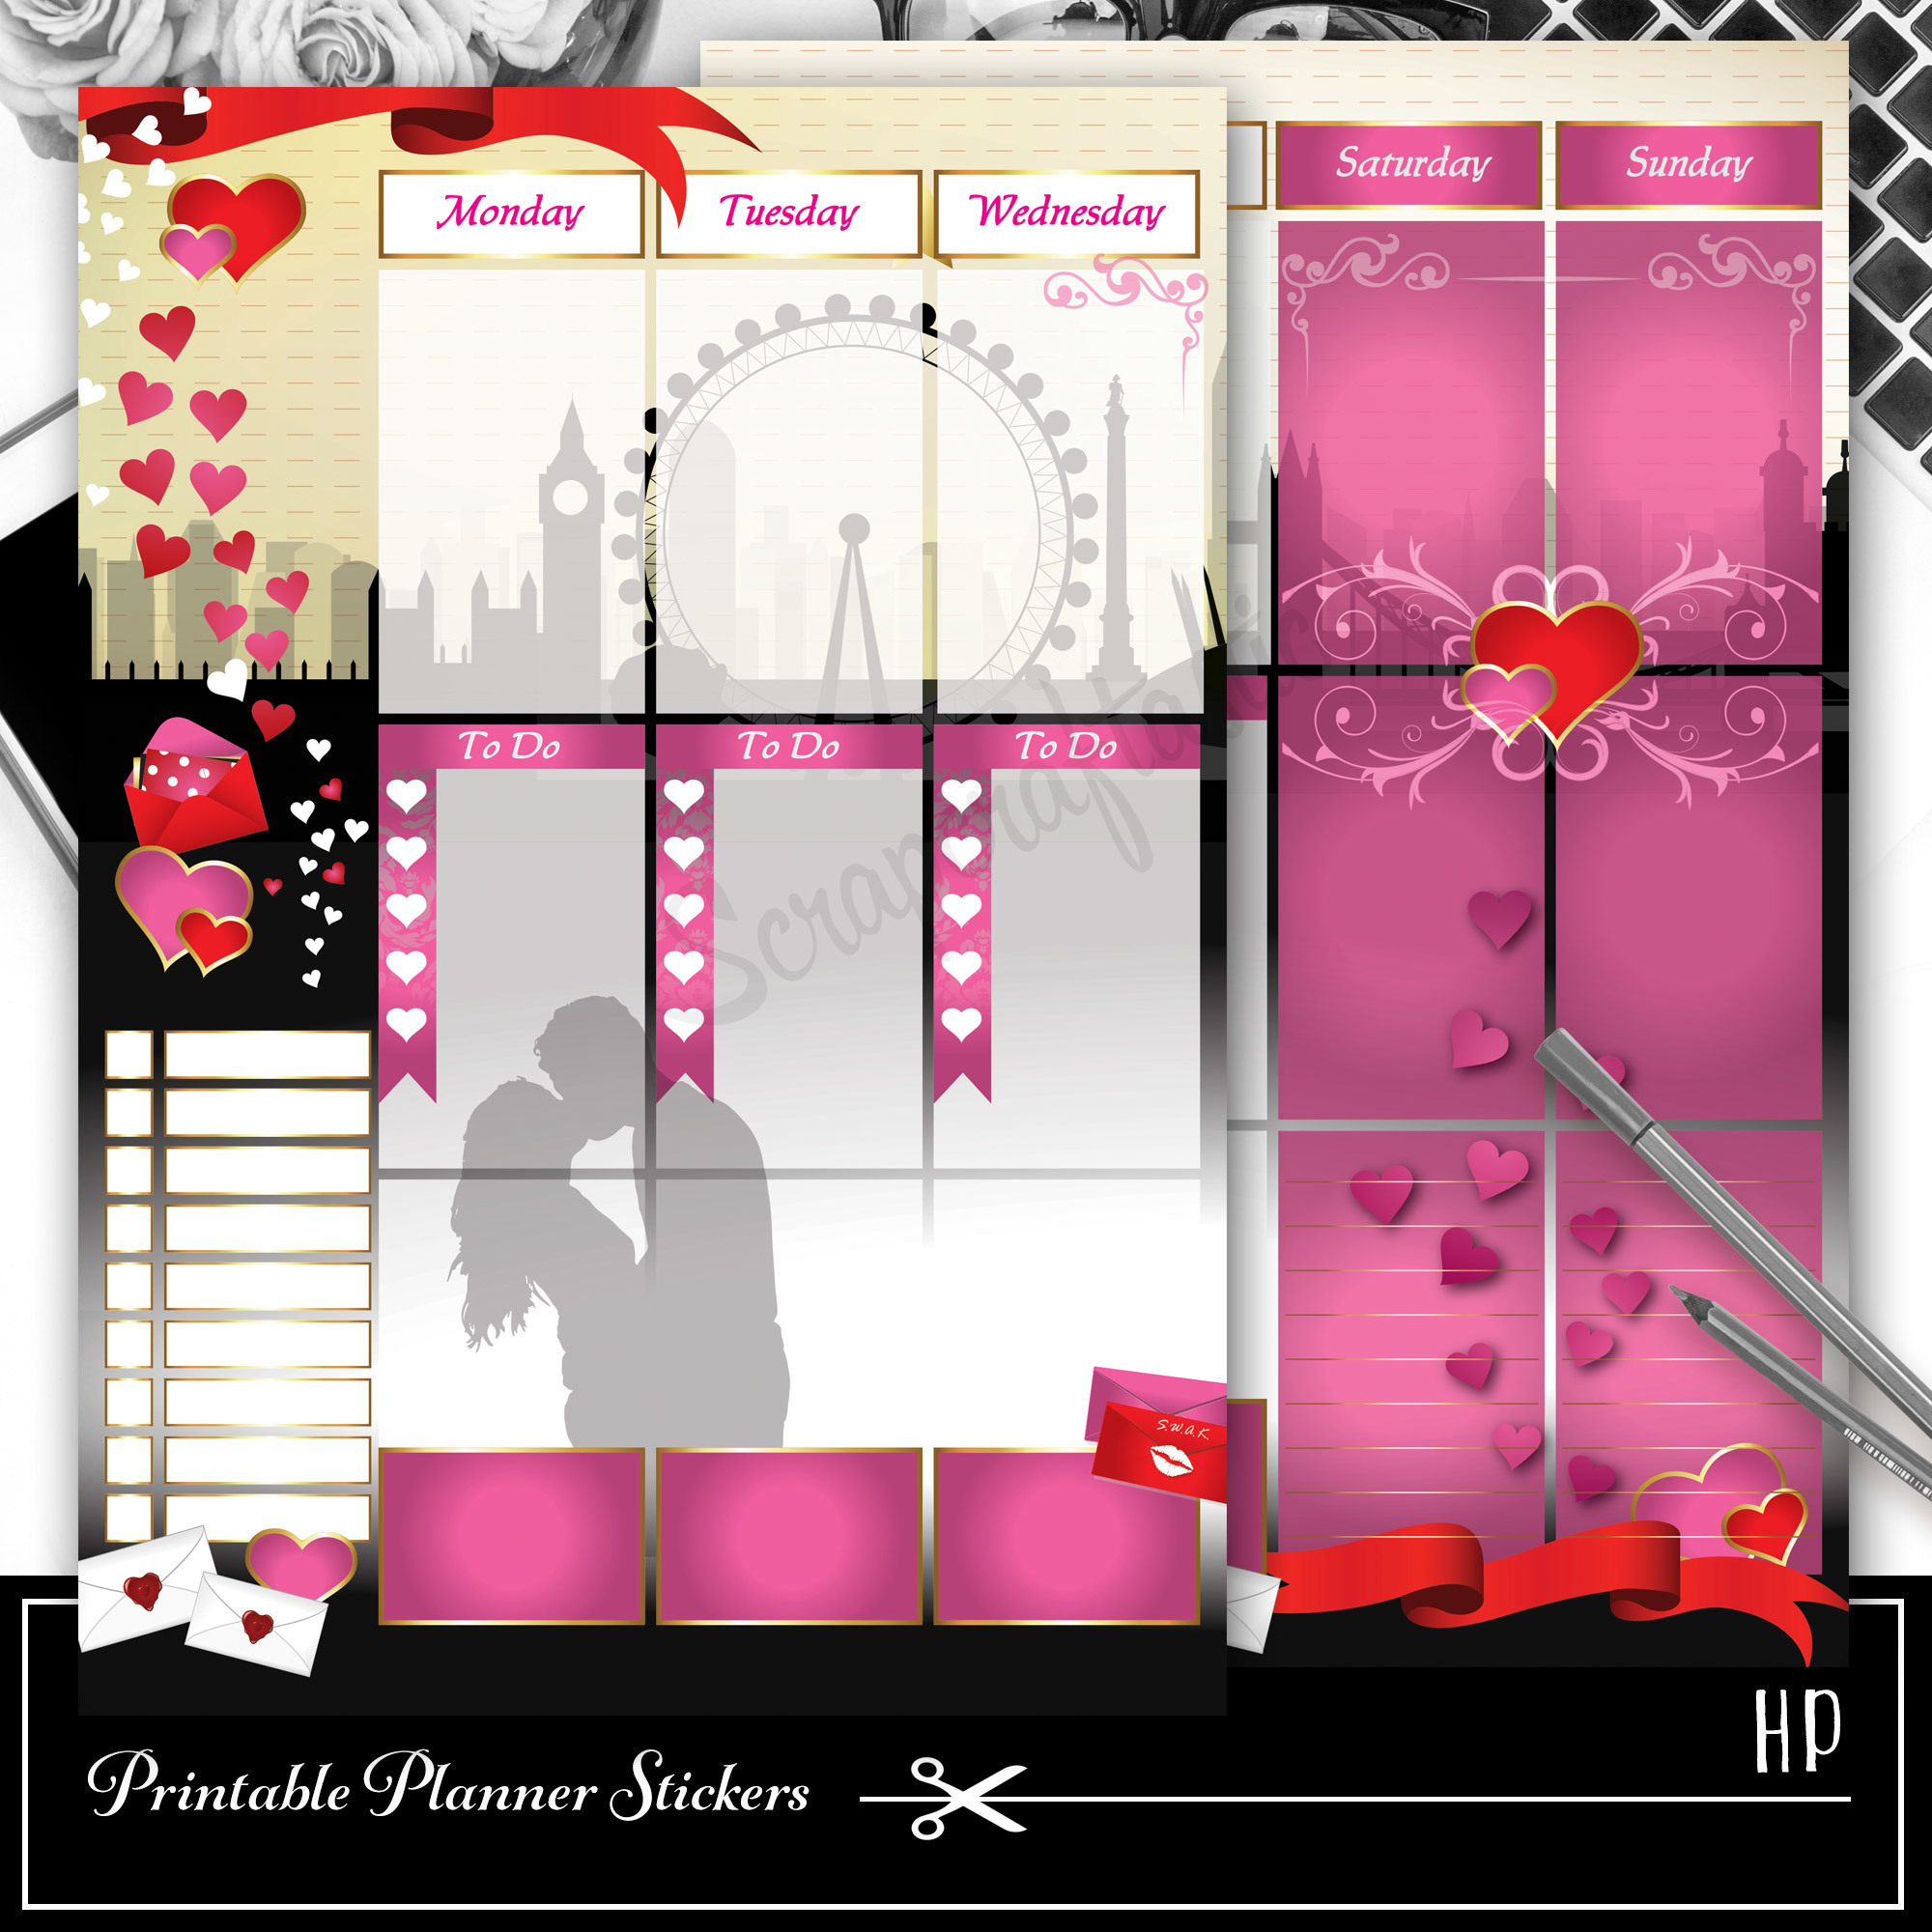 The Kiss Valentine Week Planner Spread Printable Planner Sticker Overlay for classic size Mambi Happy Planner 01009